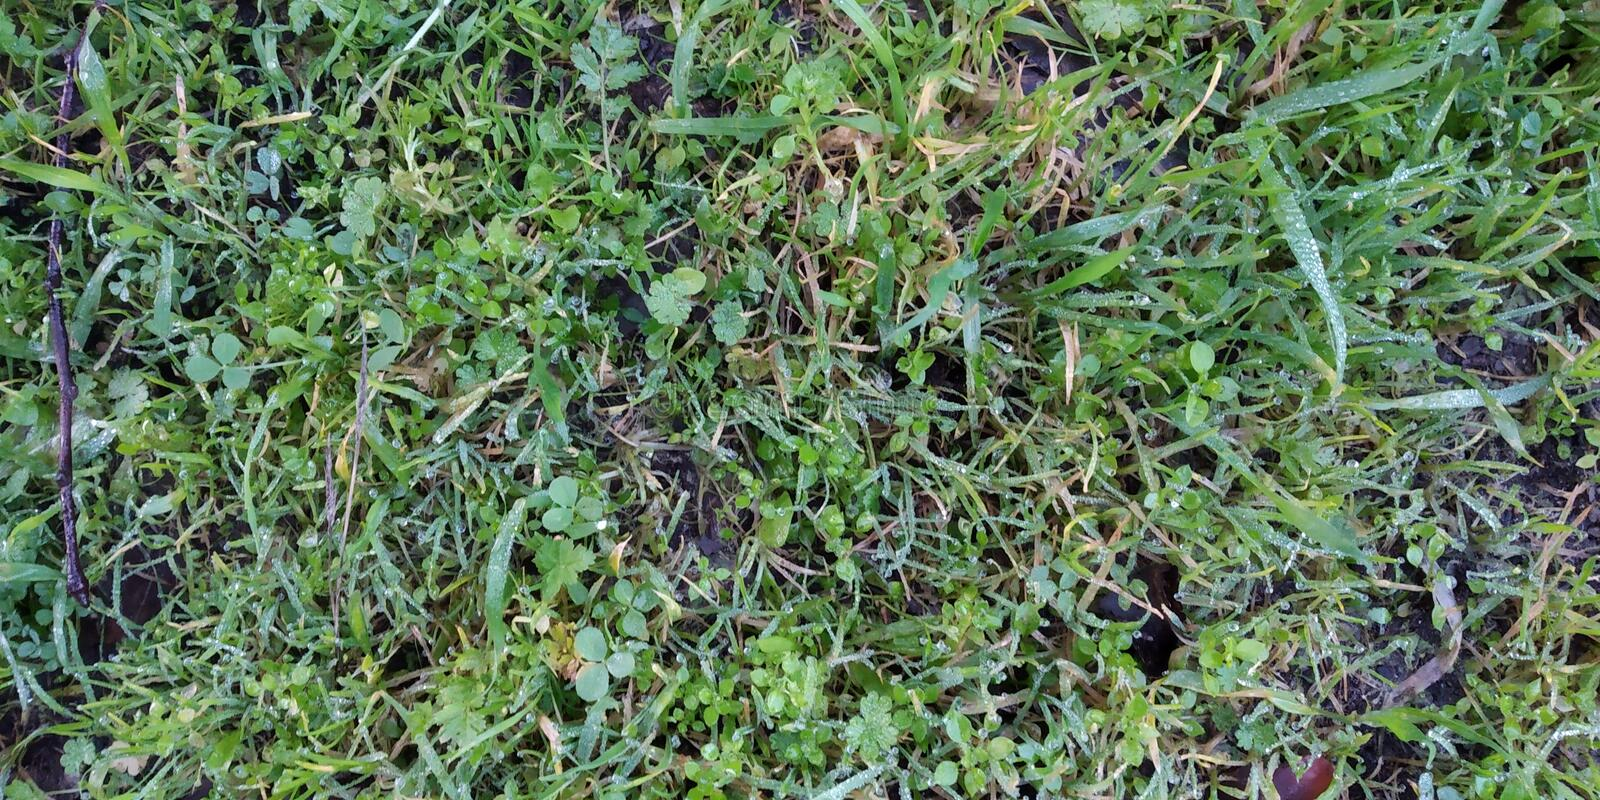 Green Herb Texture in Floor. Green Grass background and texture. Top view from lawn. Florest floor royalty free stock photo